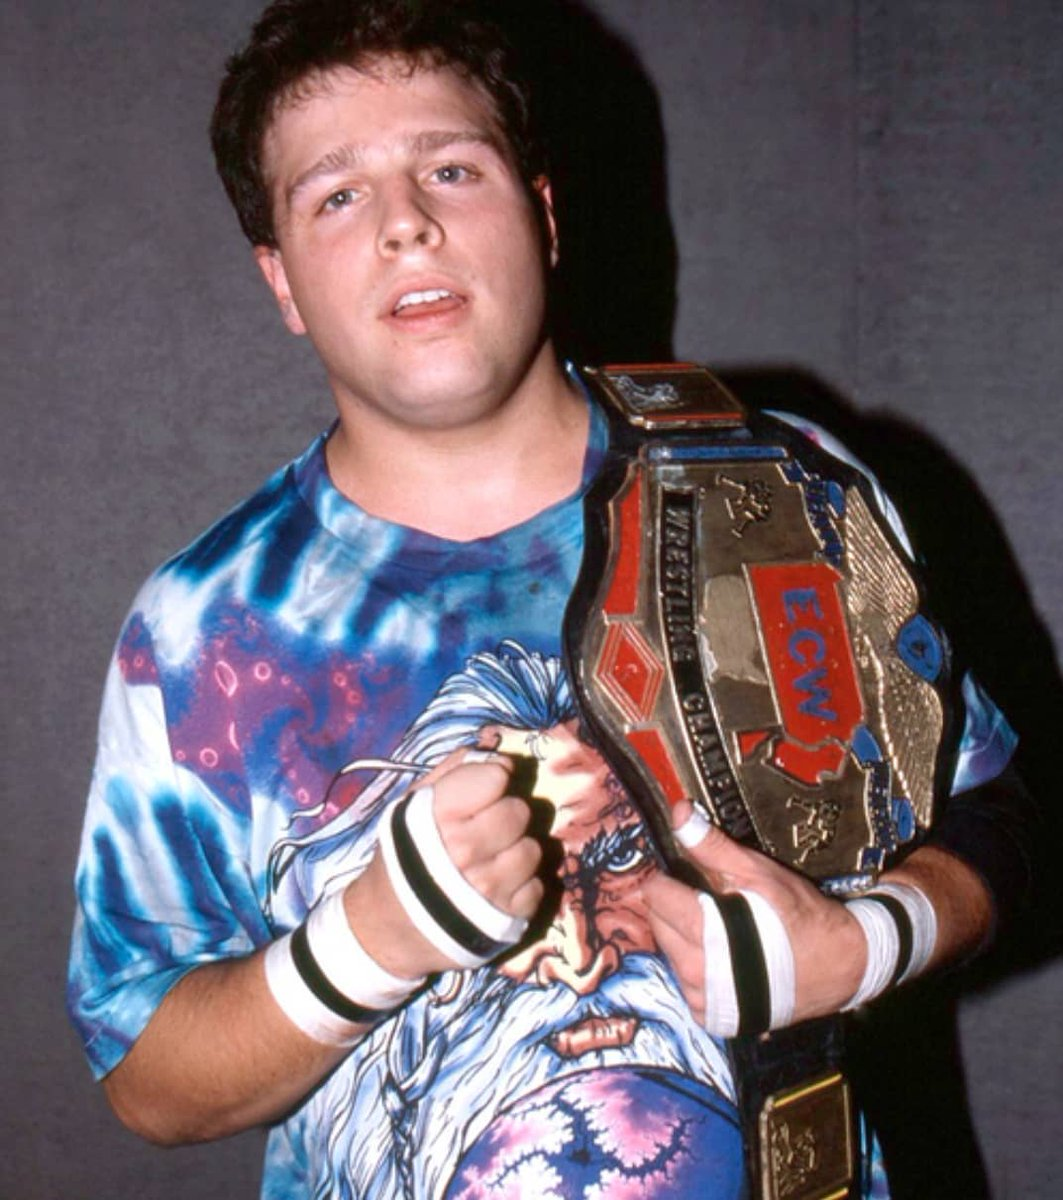 Mickey Whipwreck was the ultimate underdog and his ECW World Heavyweight Championship is a testament to his inner drive and fight.